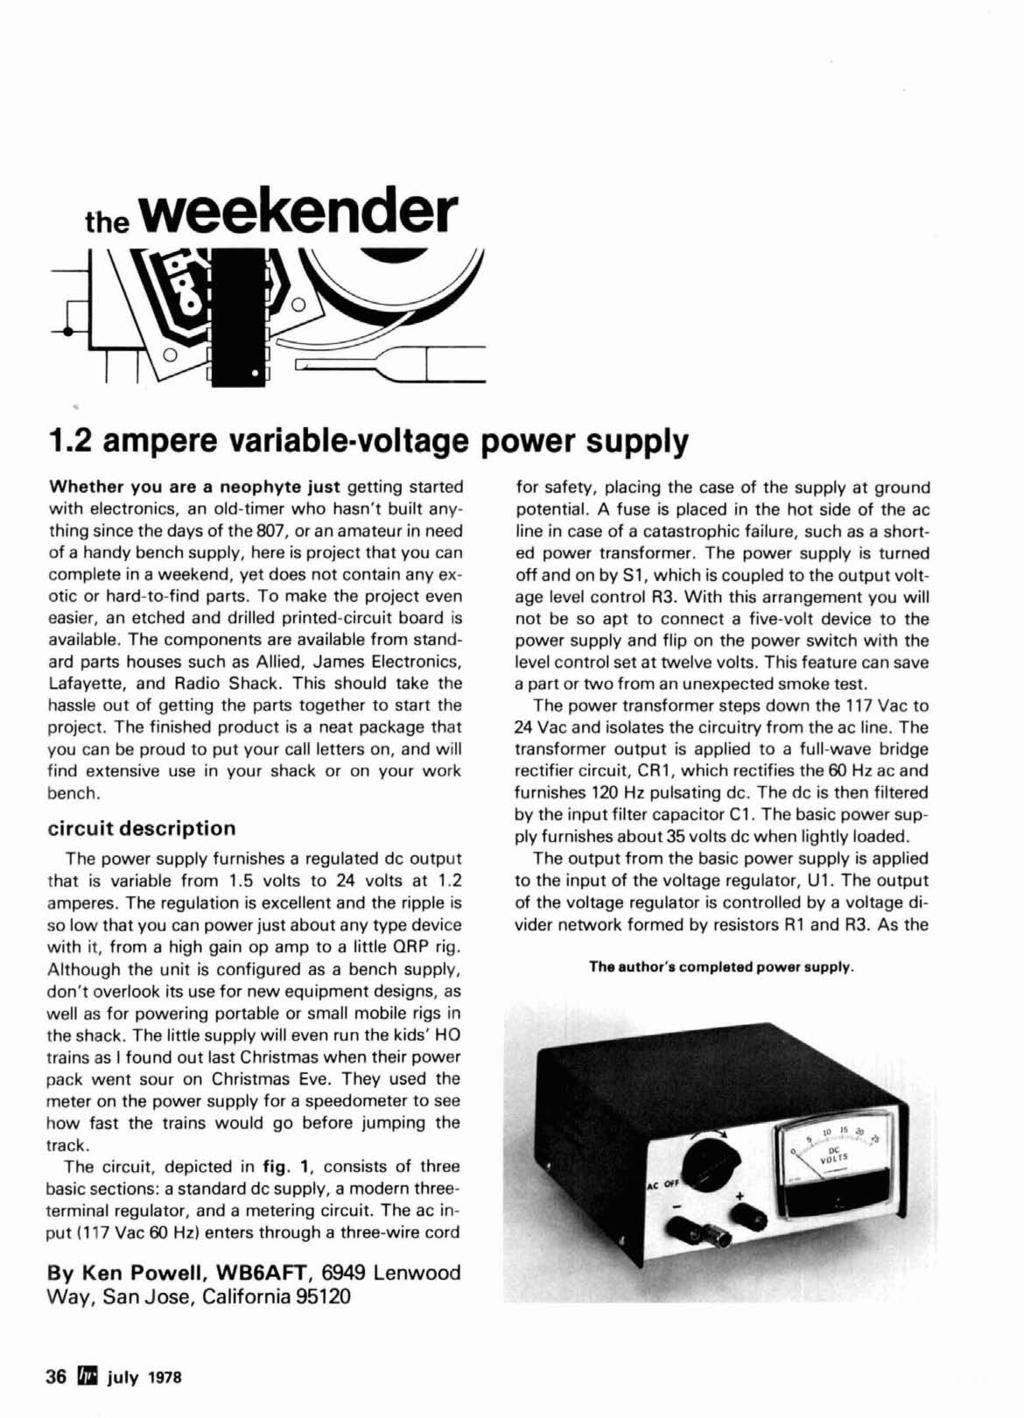 Radio Ham Magazine July 1978 J Antenna 74 Variable Power Supply 36 Kv High Voltage Dc With Neat Trick For Switching Polarity The Weekender 1 38 12 Ampere